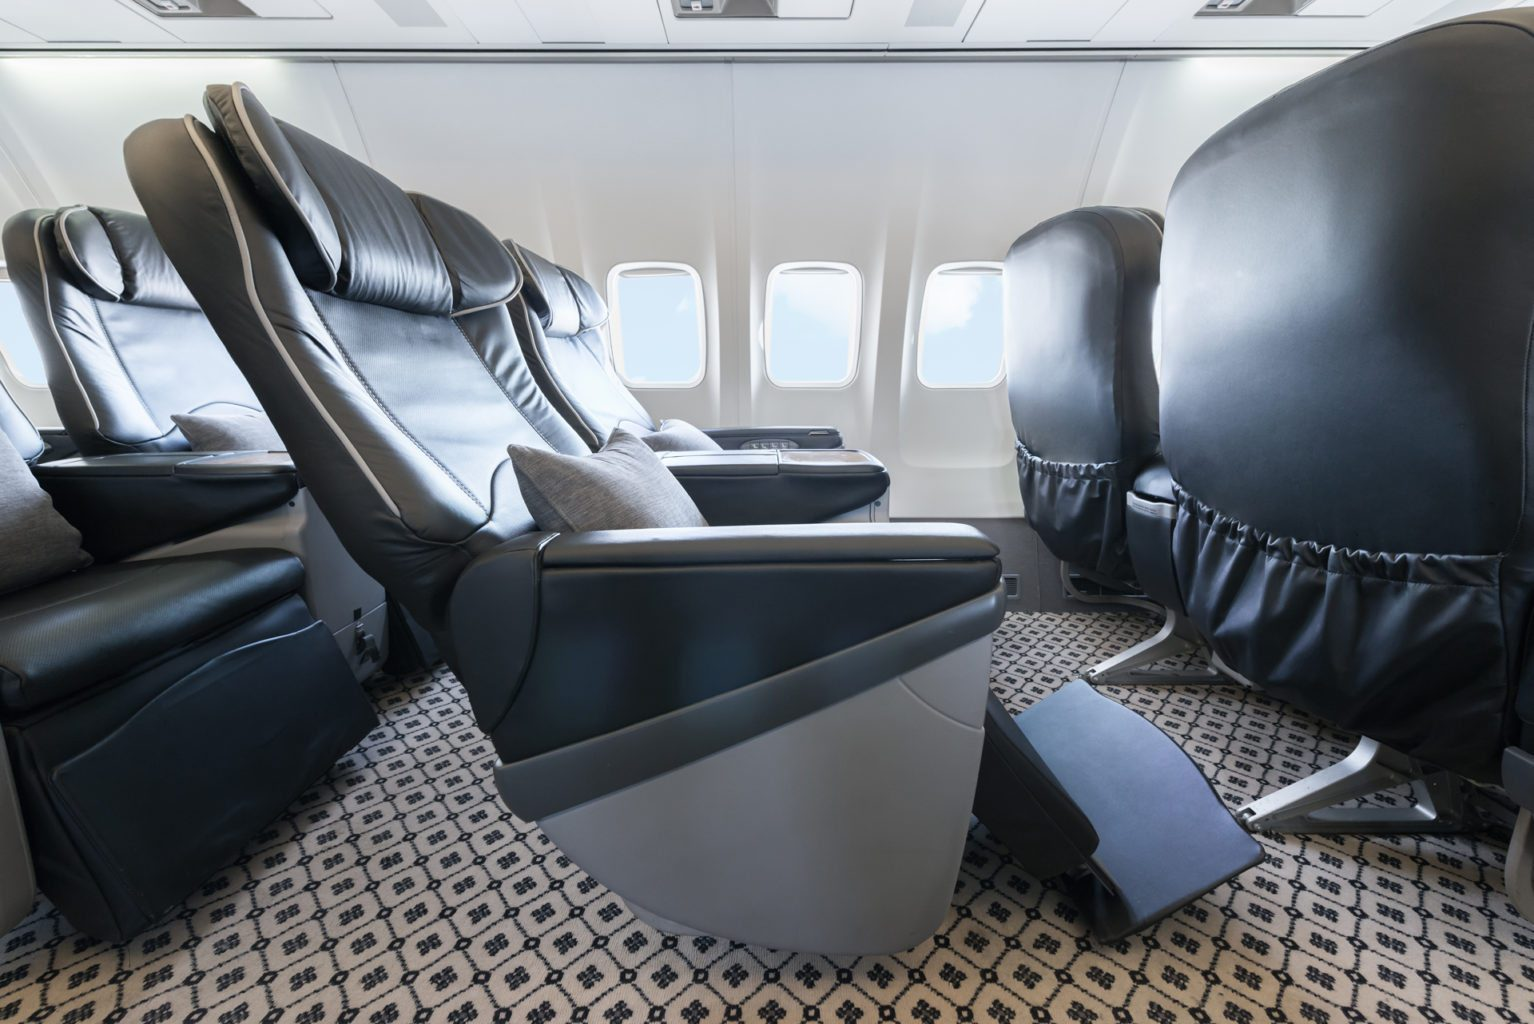 Aircraft seats pre-season travel